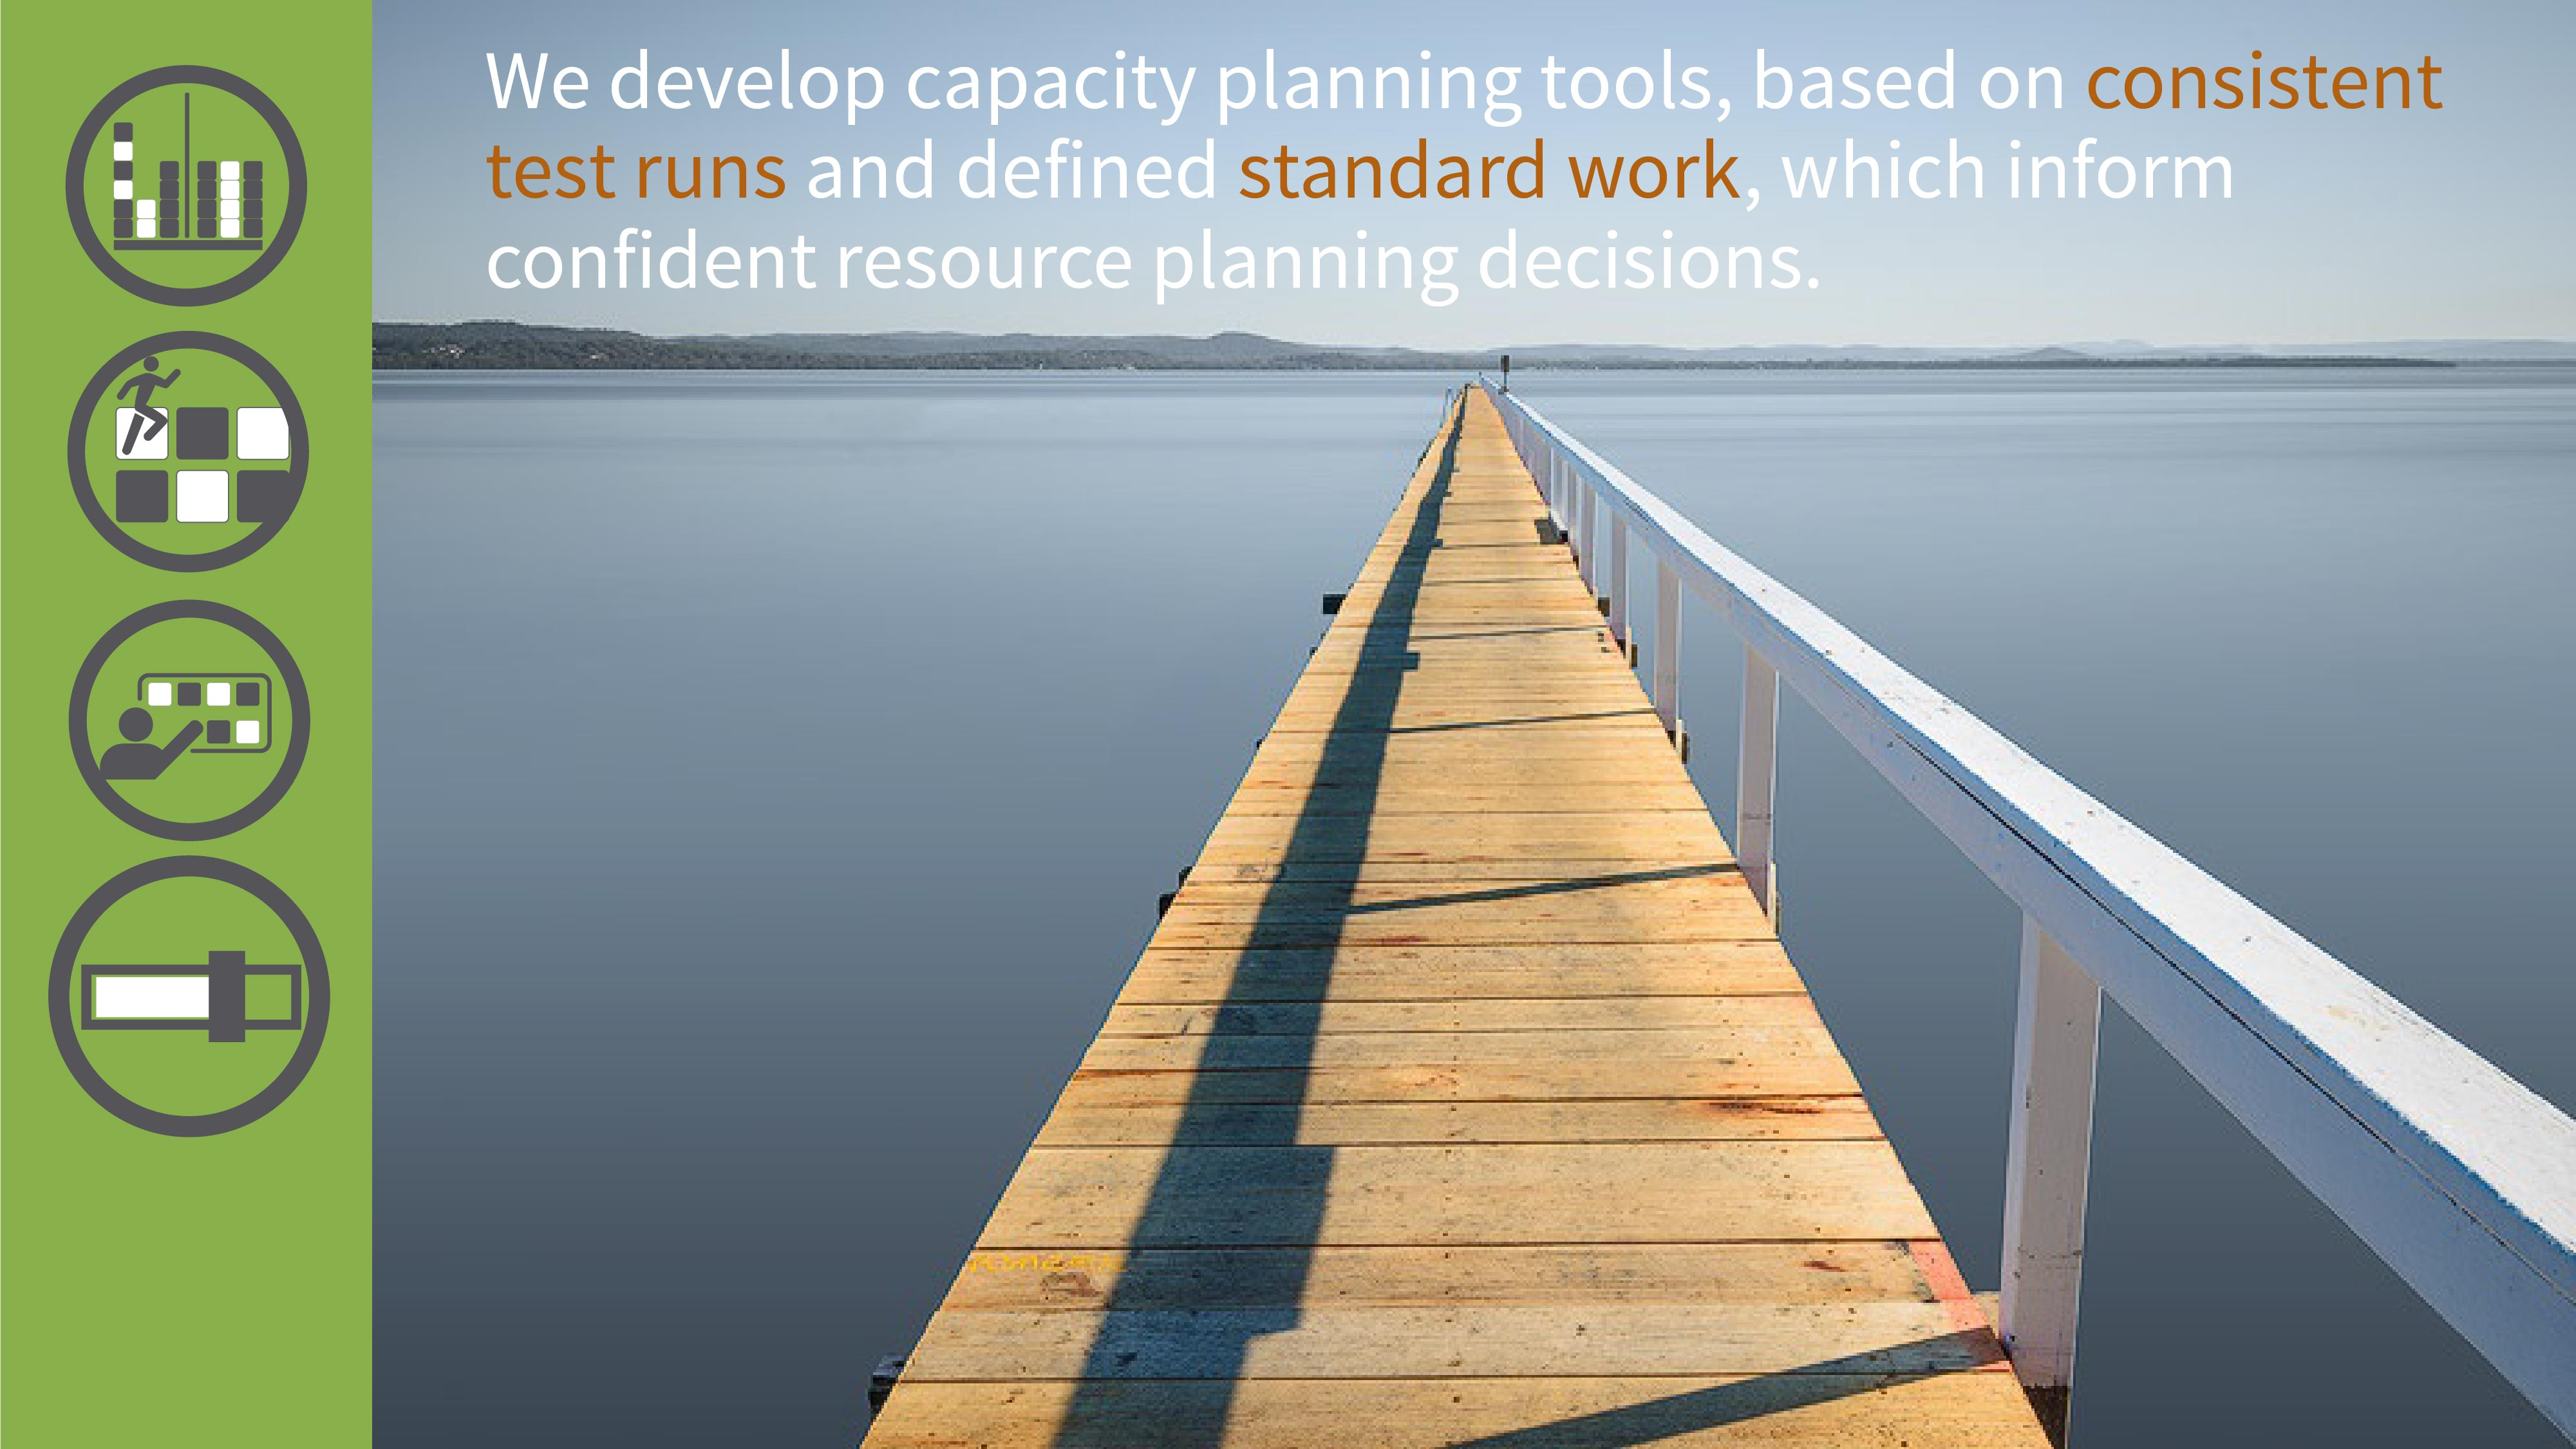 16 Our capacity planning is based on knowledge